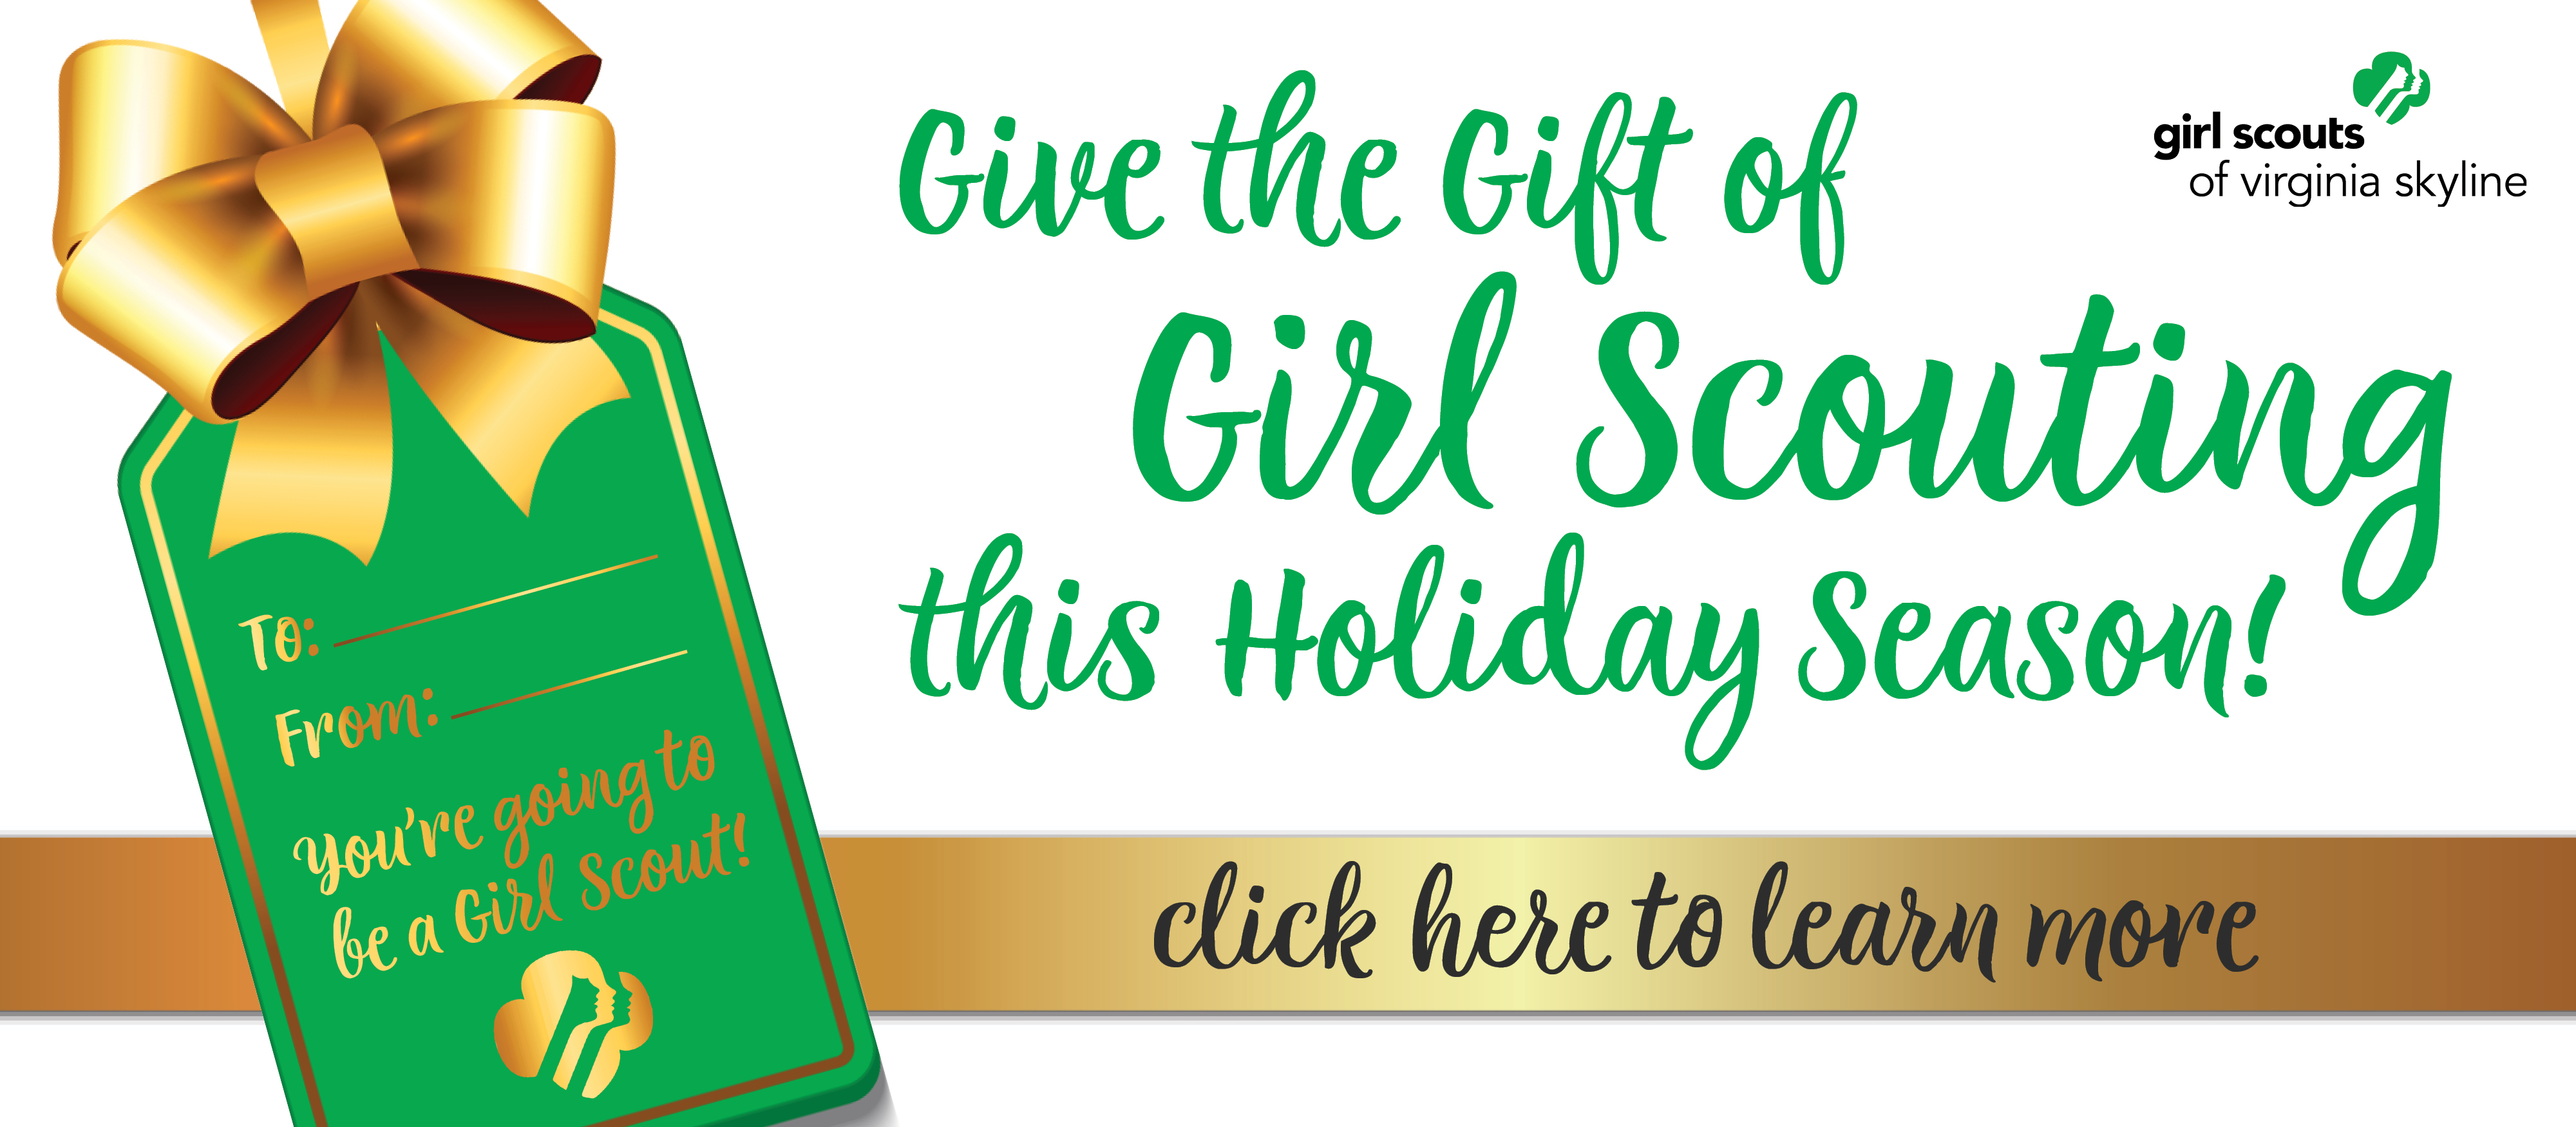 Gift the Gift of Girl Scouting this holiday season!